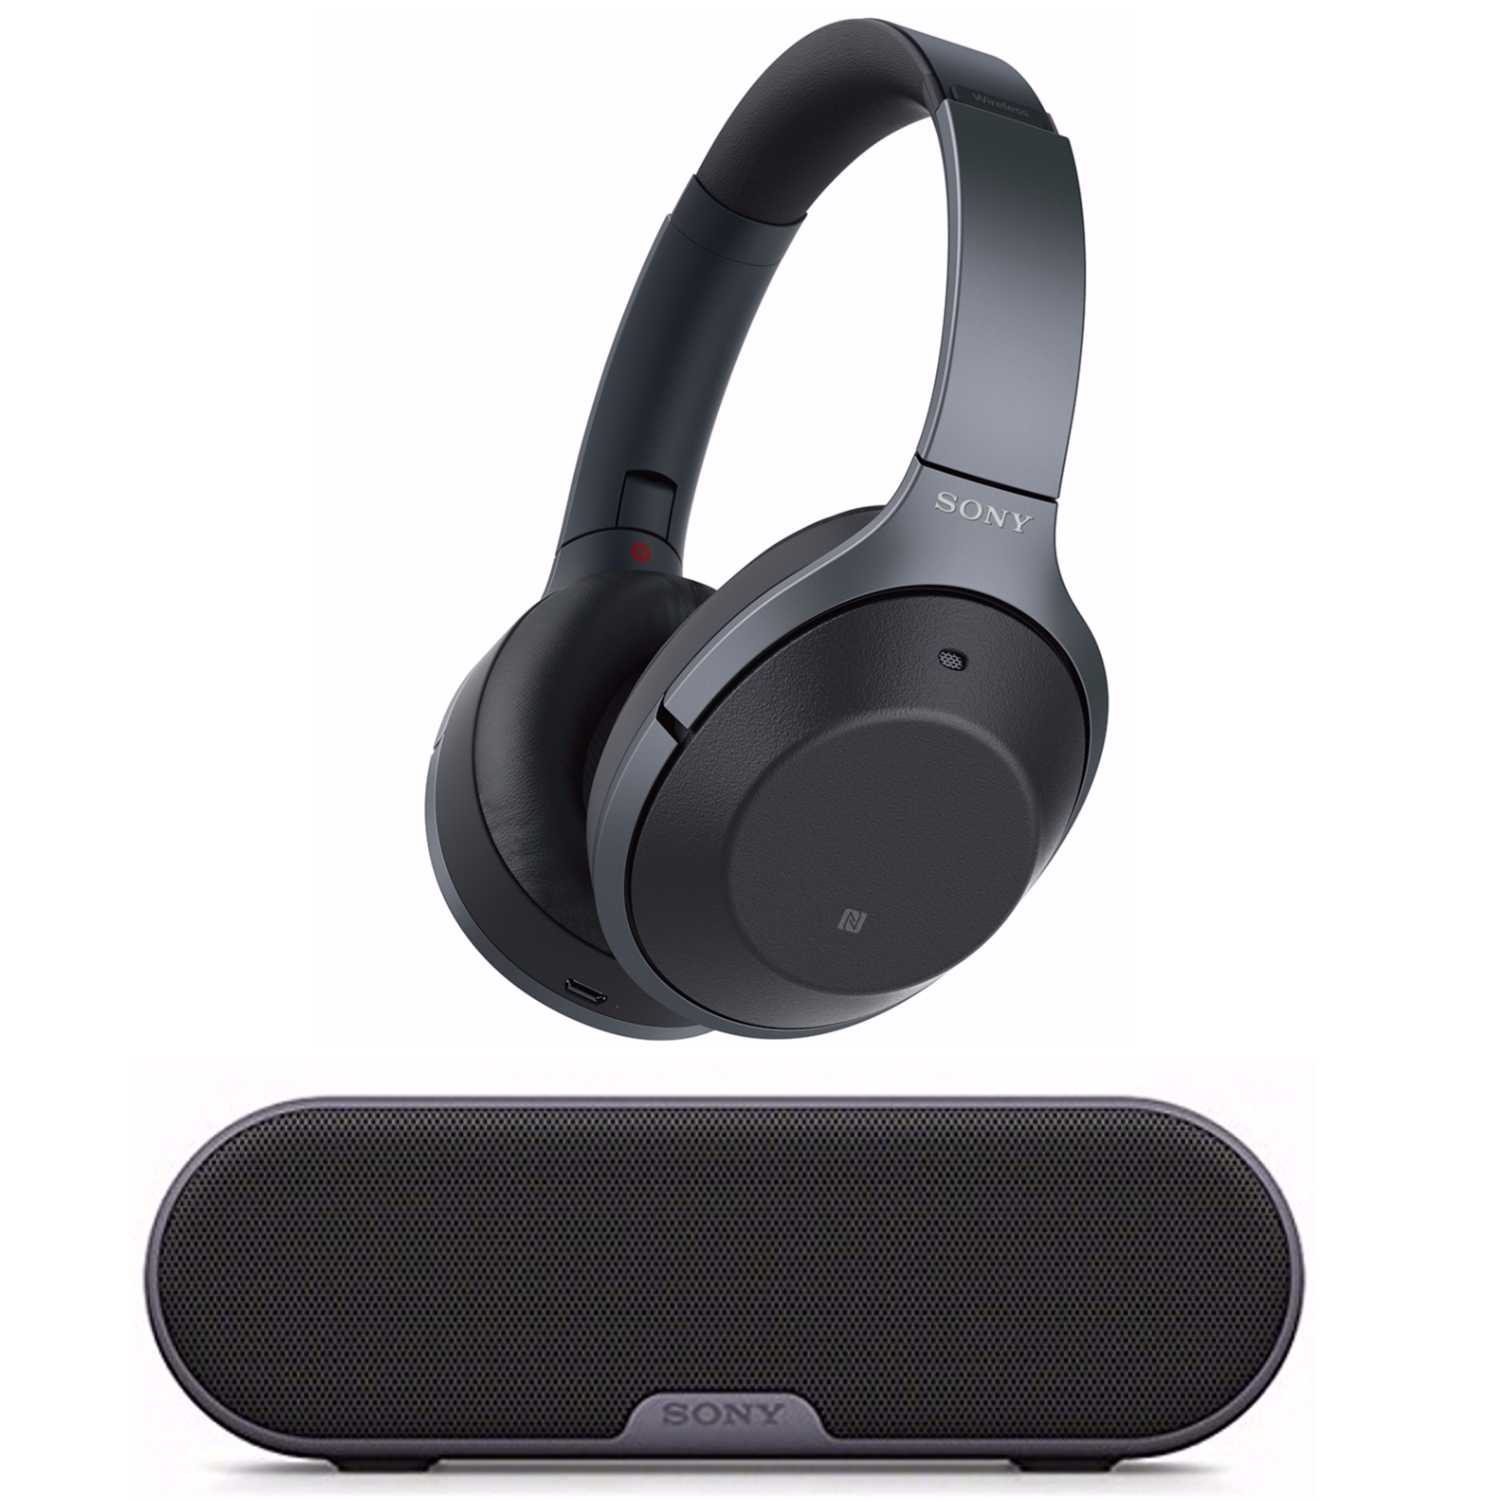 Sony Wireless Noise Cancelling Headphones (Black) with Portable Wireless Speaker by Sony